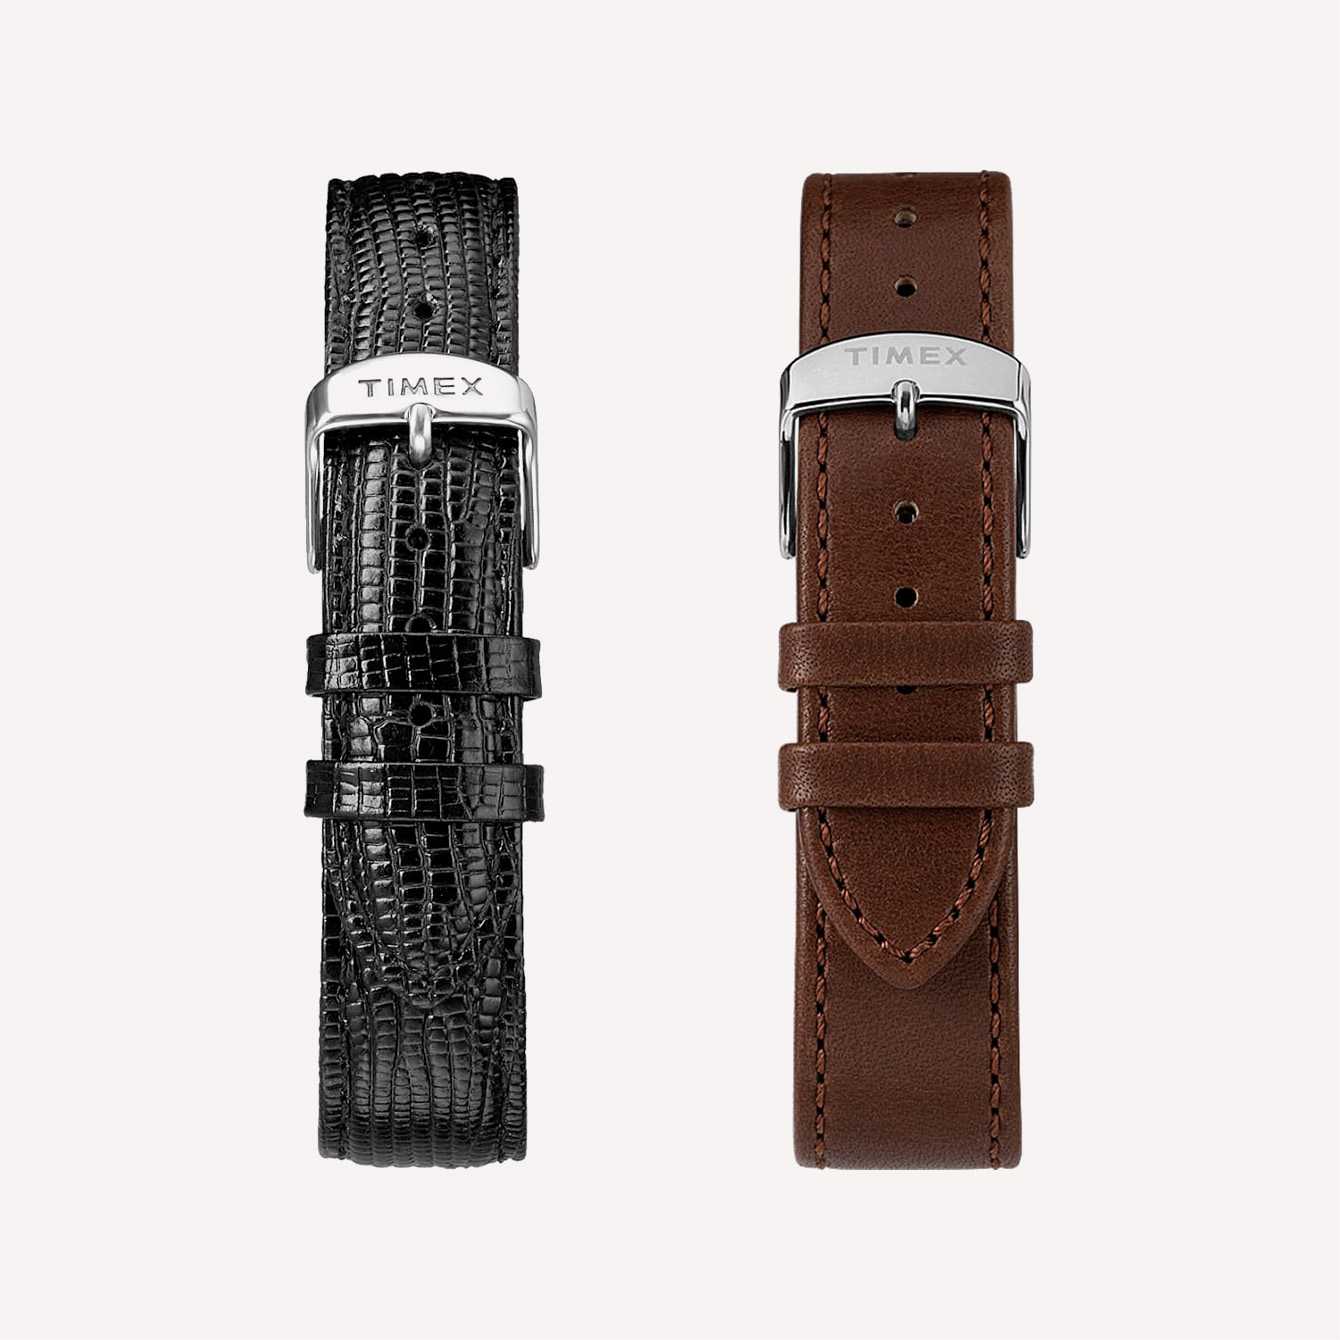 Timex Marlin 34 and 40mm Leather Straps